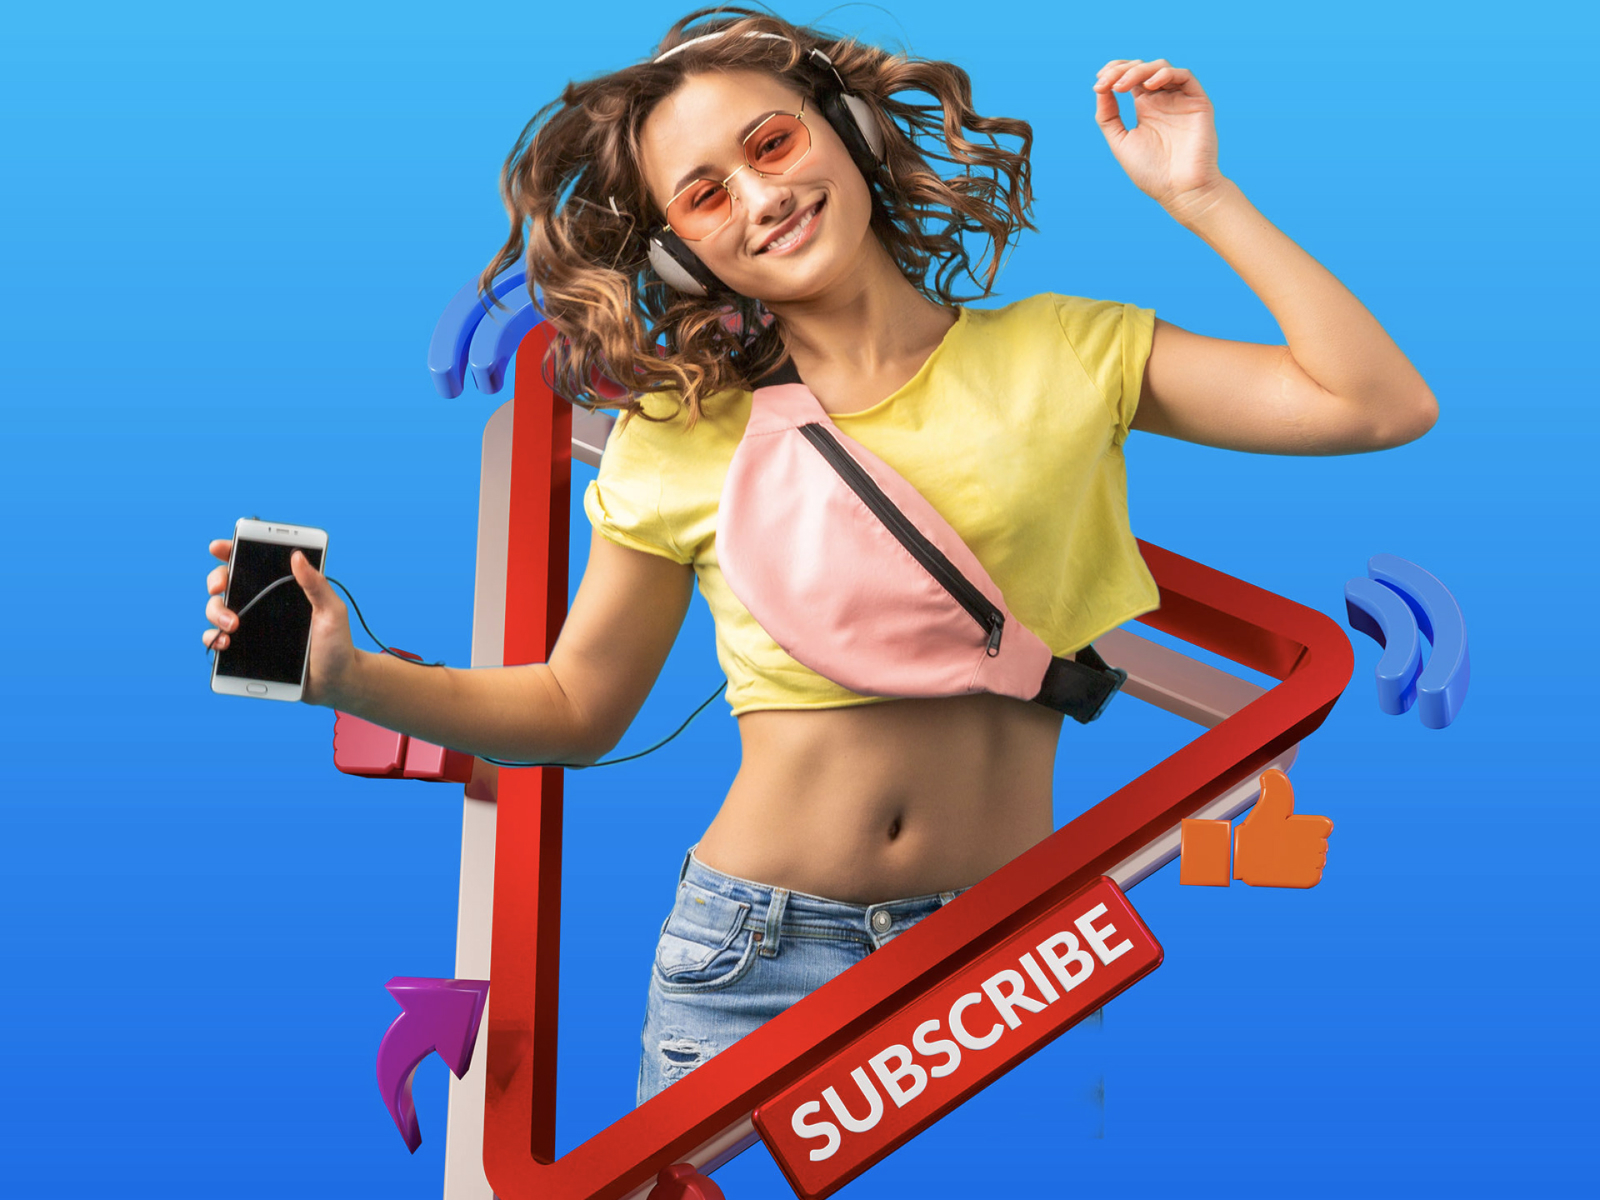 Youtube Channel Promotion cover image